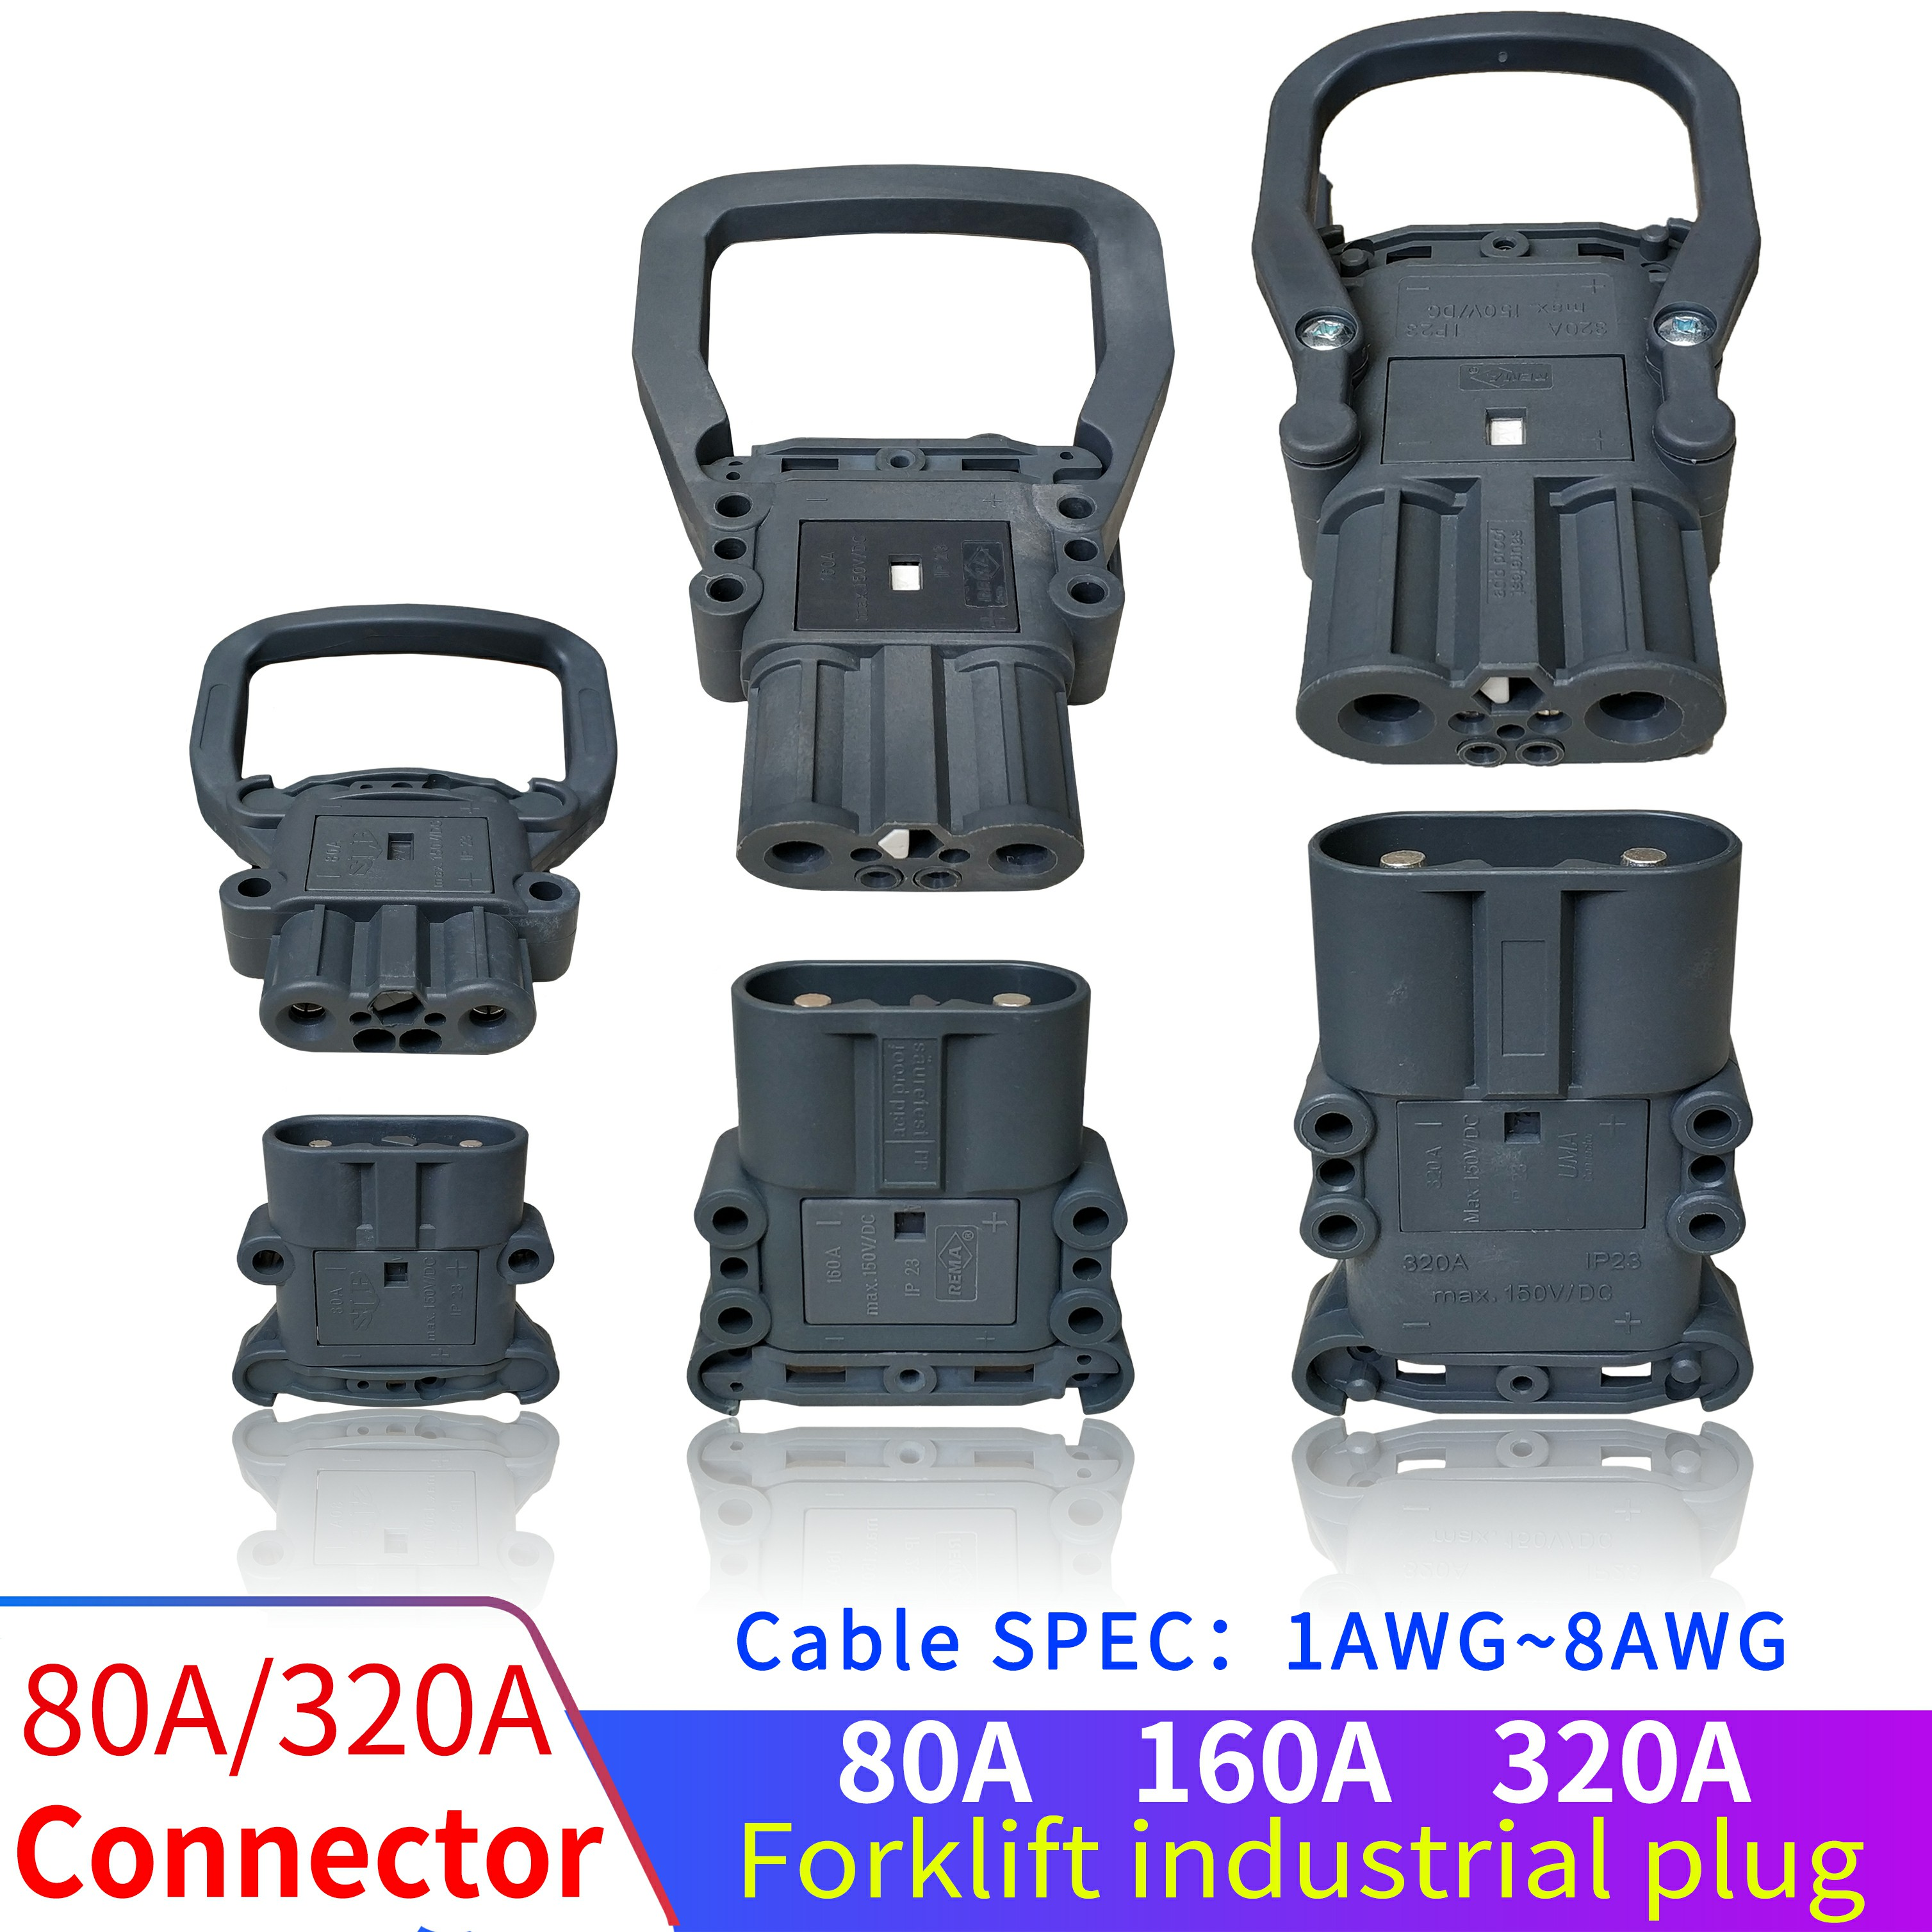 Male/Female Plug 80A160A320A High Current Battery Charging Connector Stacker forklift battery charging plugs